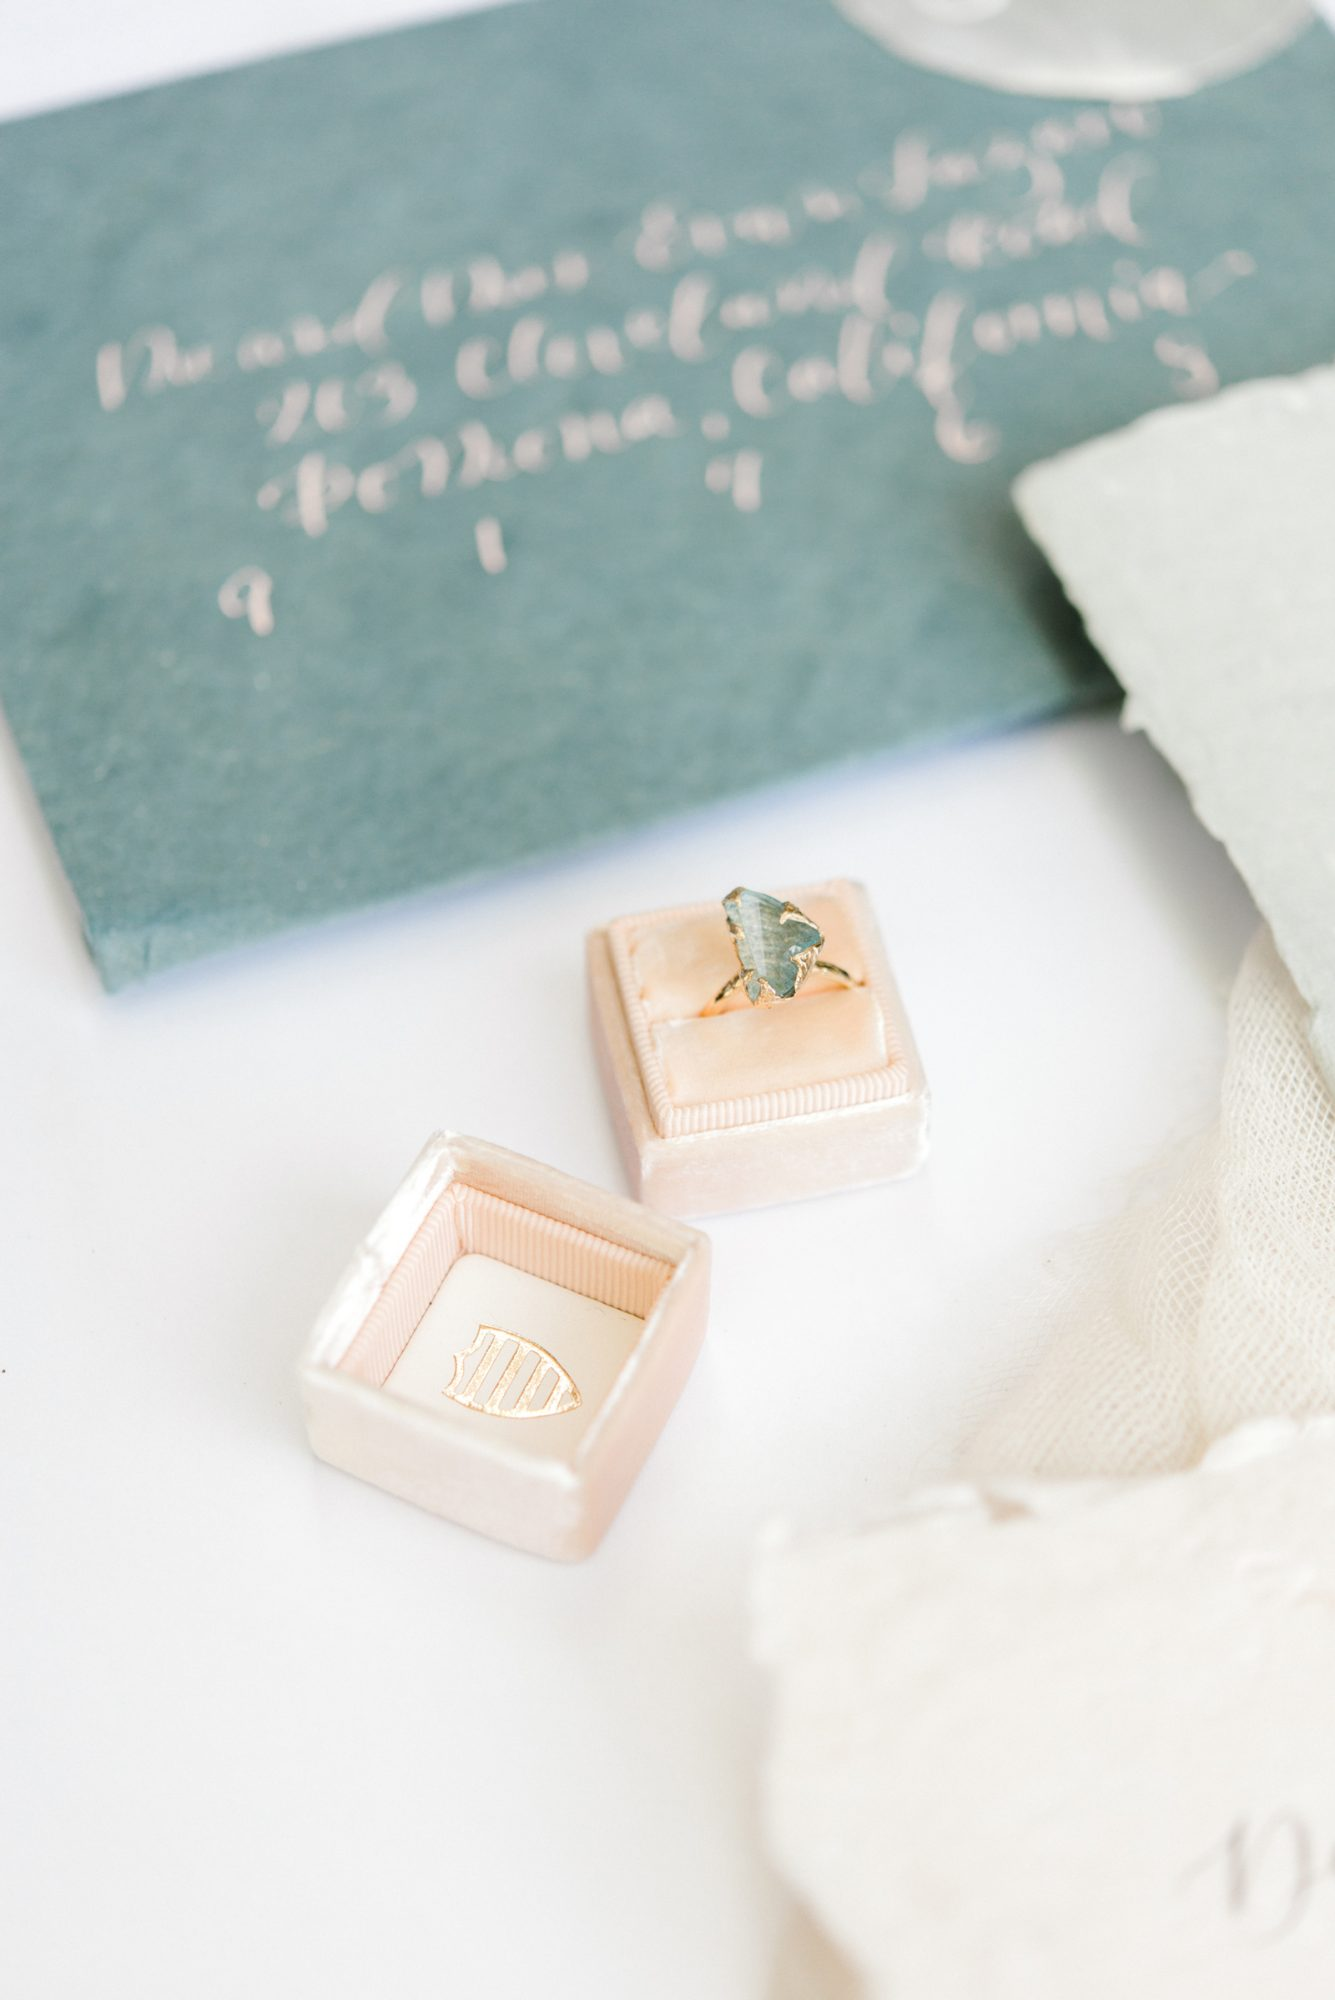 engagement rings aqua stone with a gold band